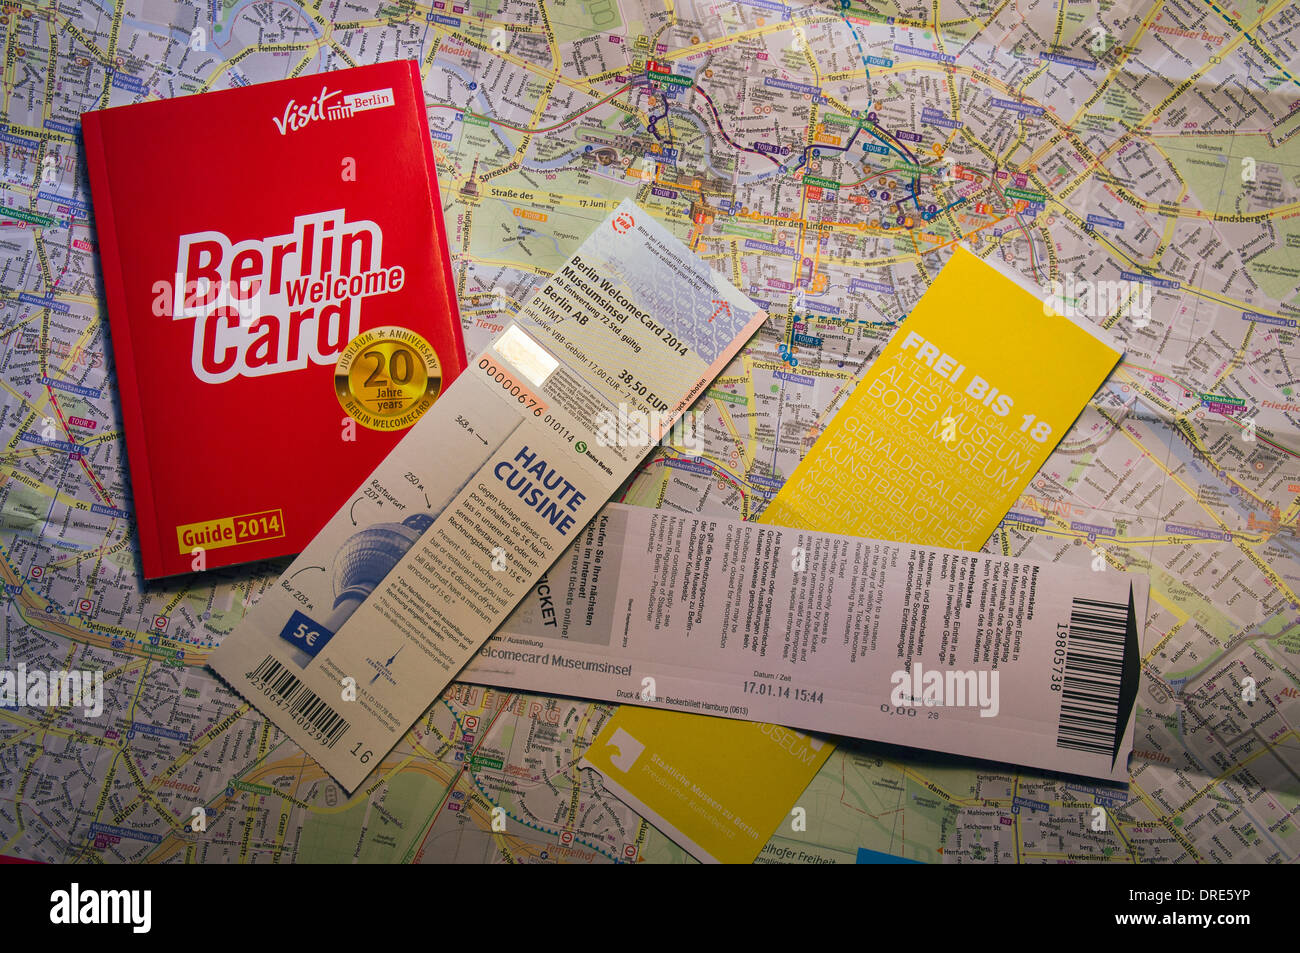 Berlin Berlin Welcome Card Welcomecard Karte Ticket Gutschein